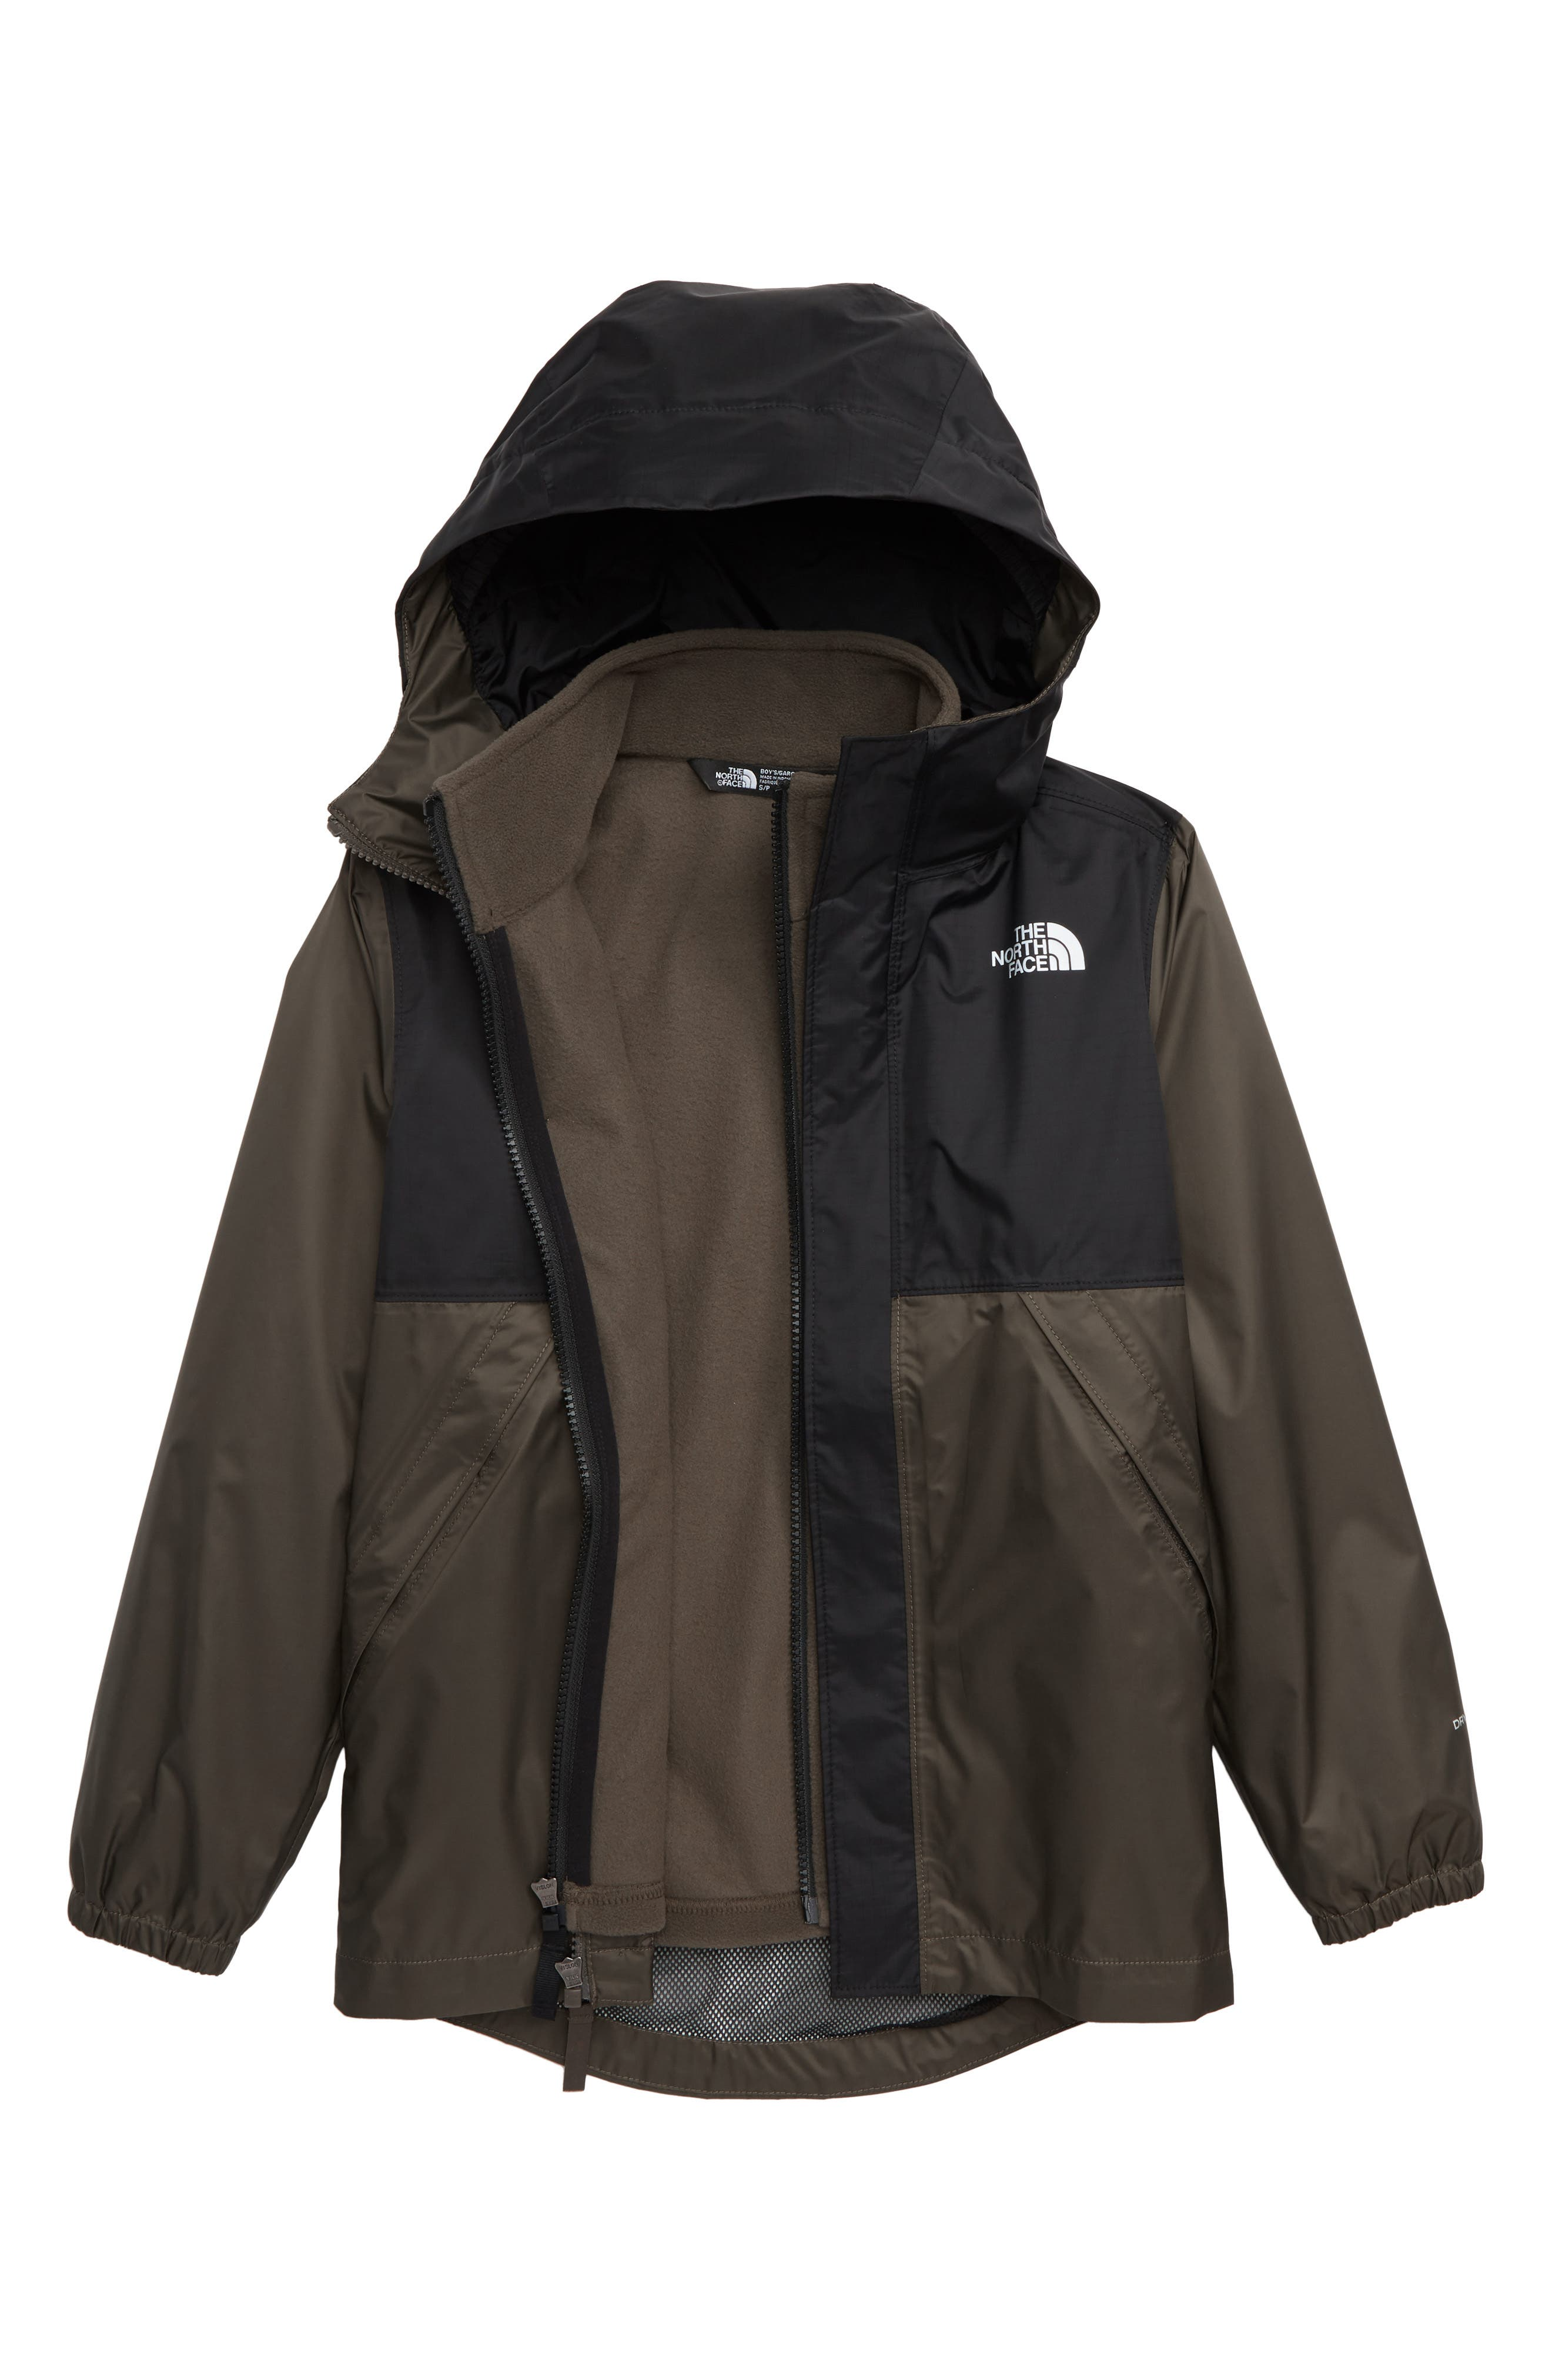 Stormy Rain Triclimate<sup>®</sup> Waterproof 3-in-1 Jacket, Main, color, TAUPE GREEN